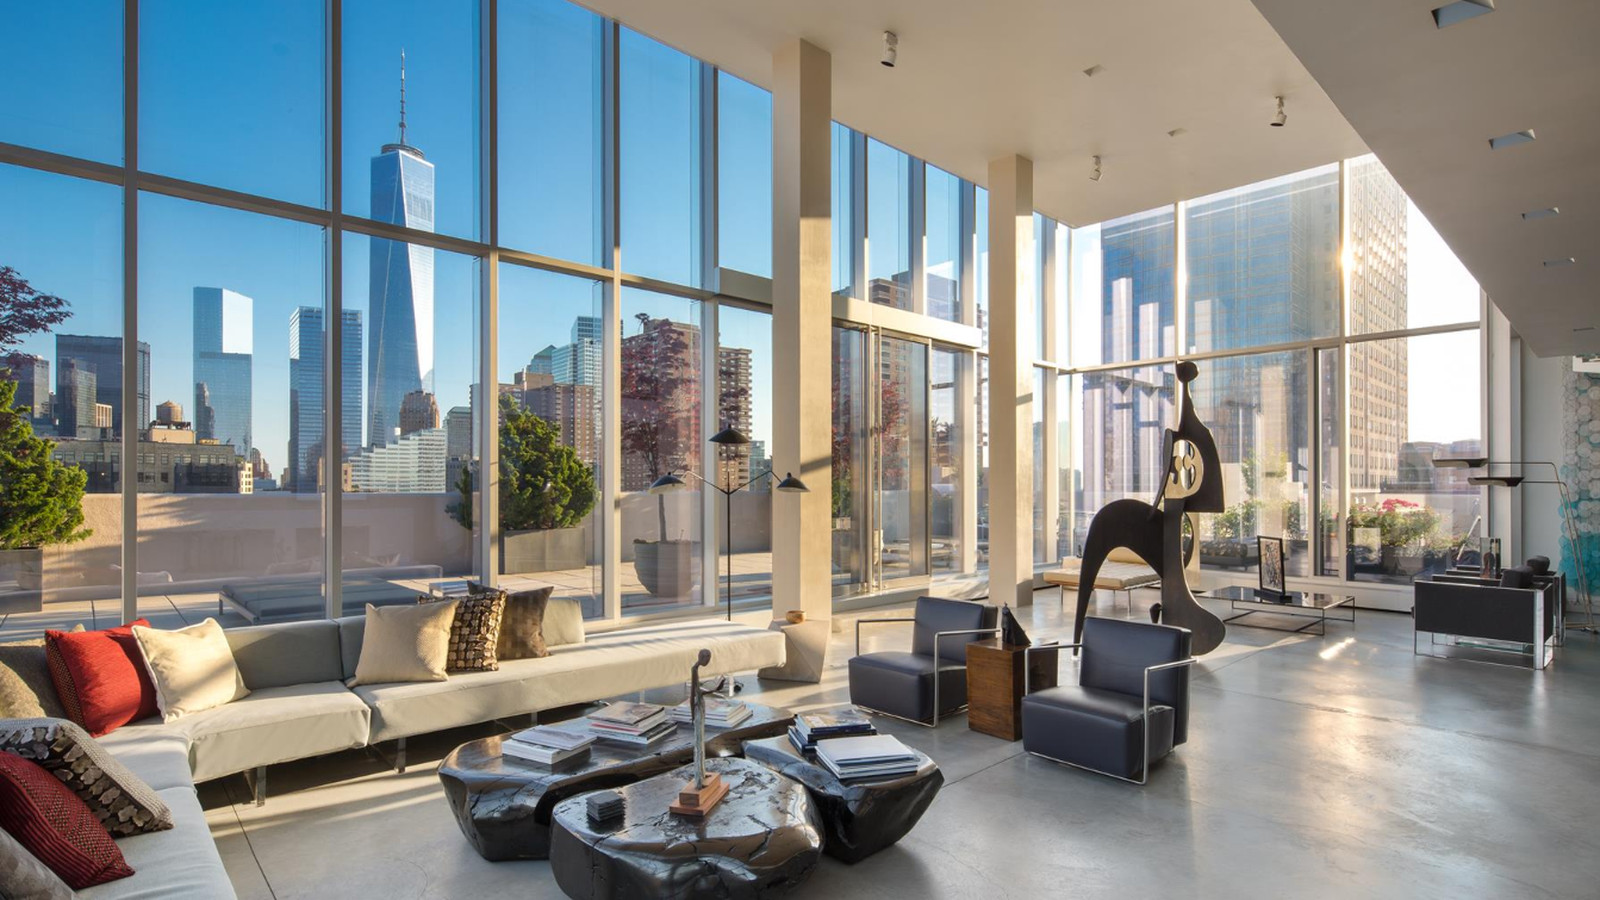 Tribeca s sky lofts penthouse returns now wants 45m for Tribeca property for sale